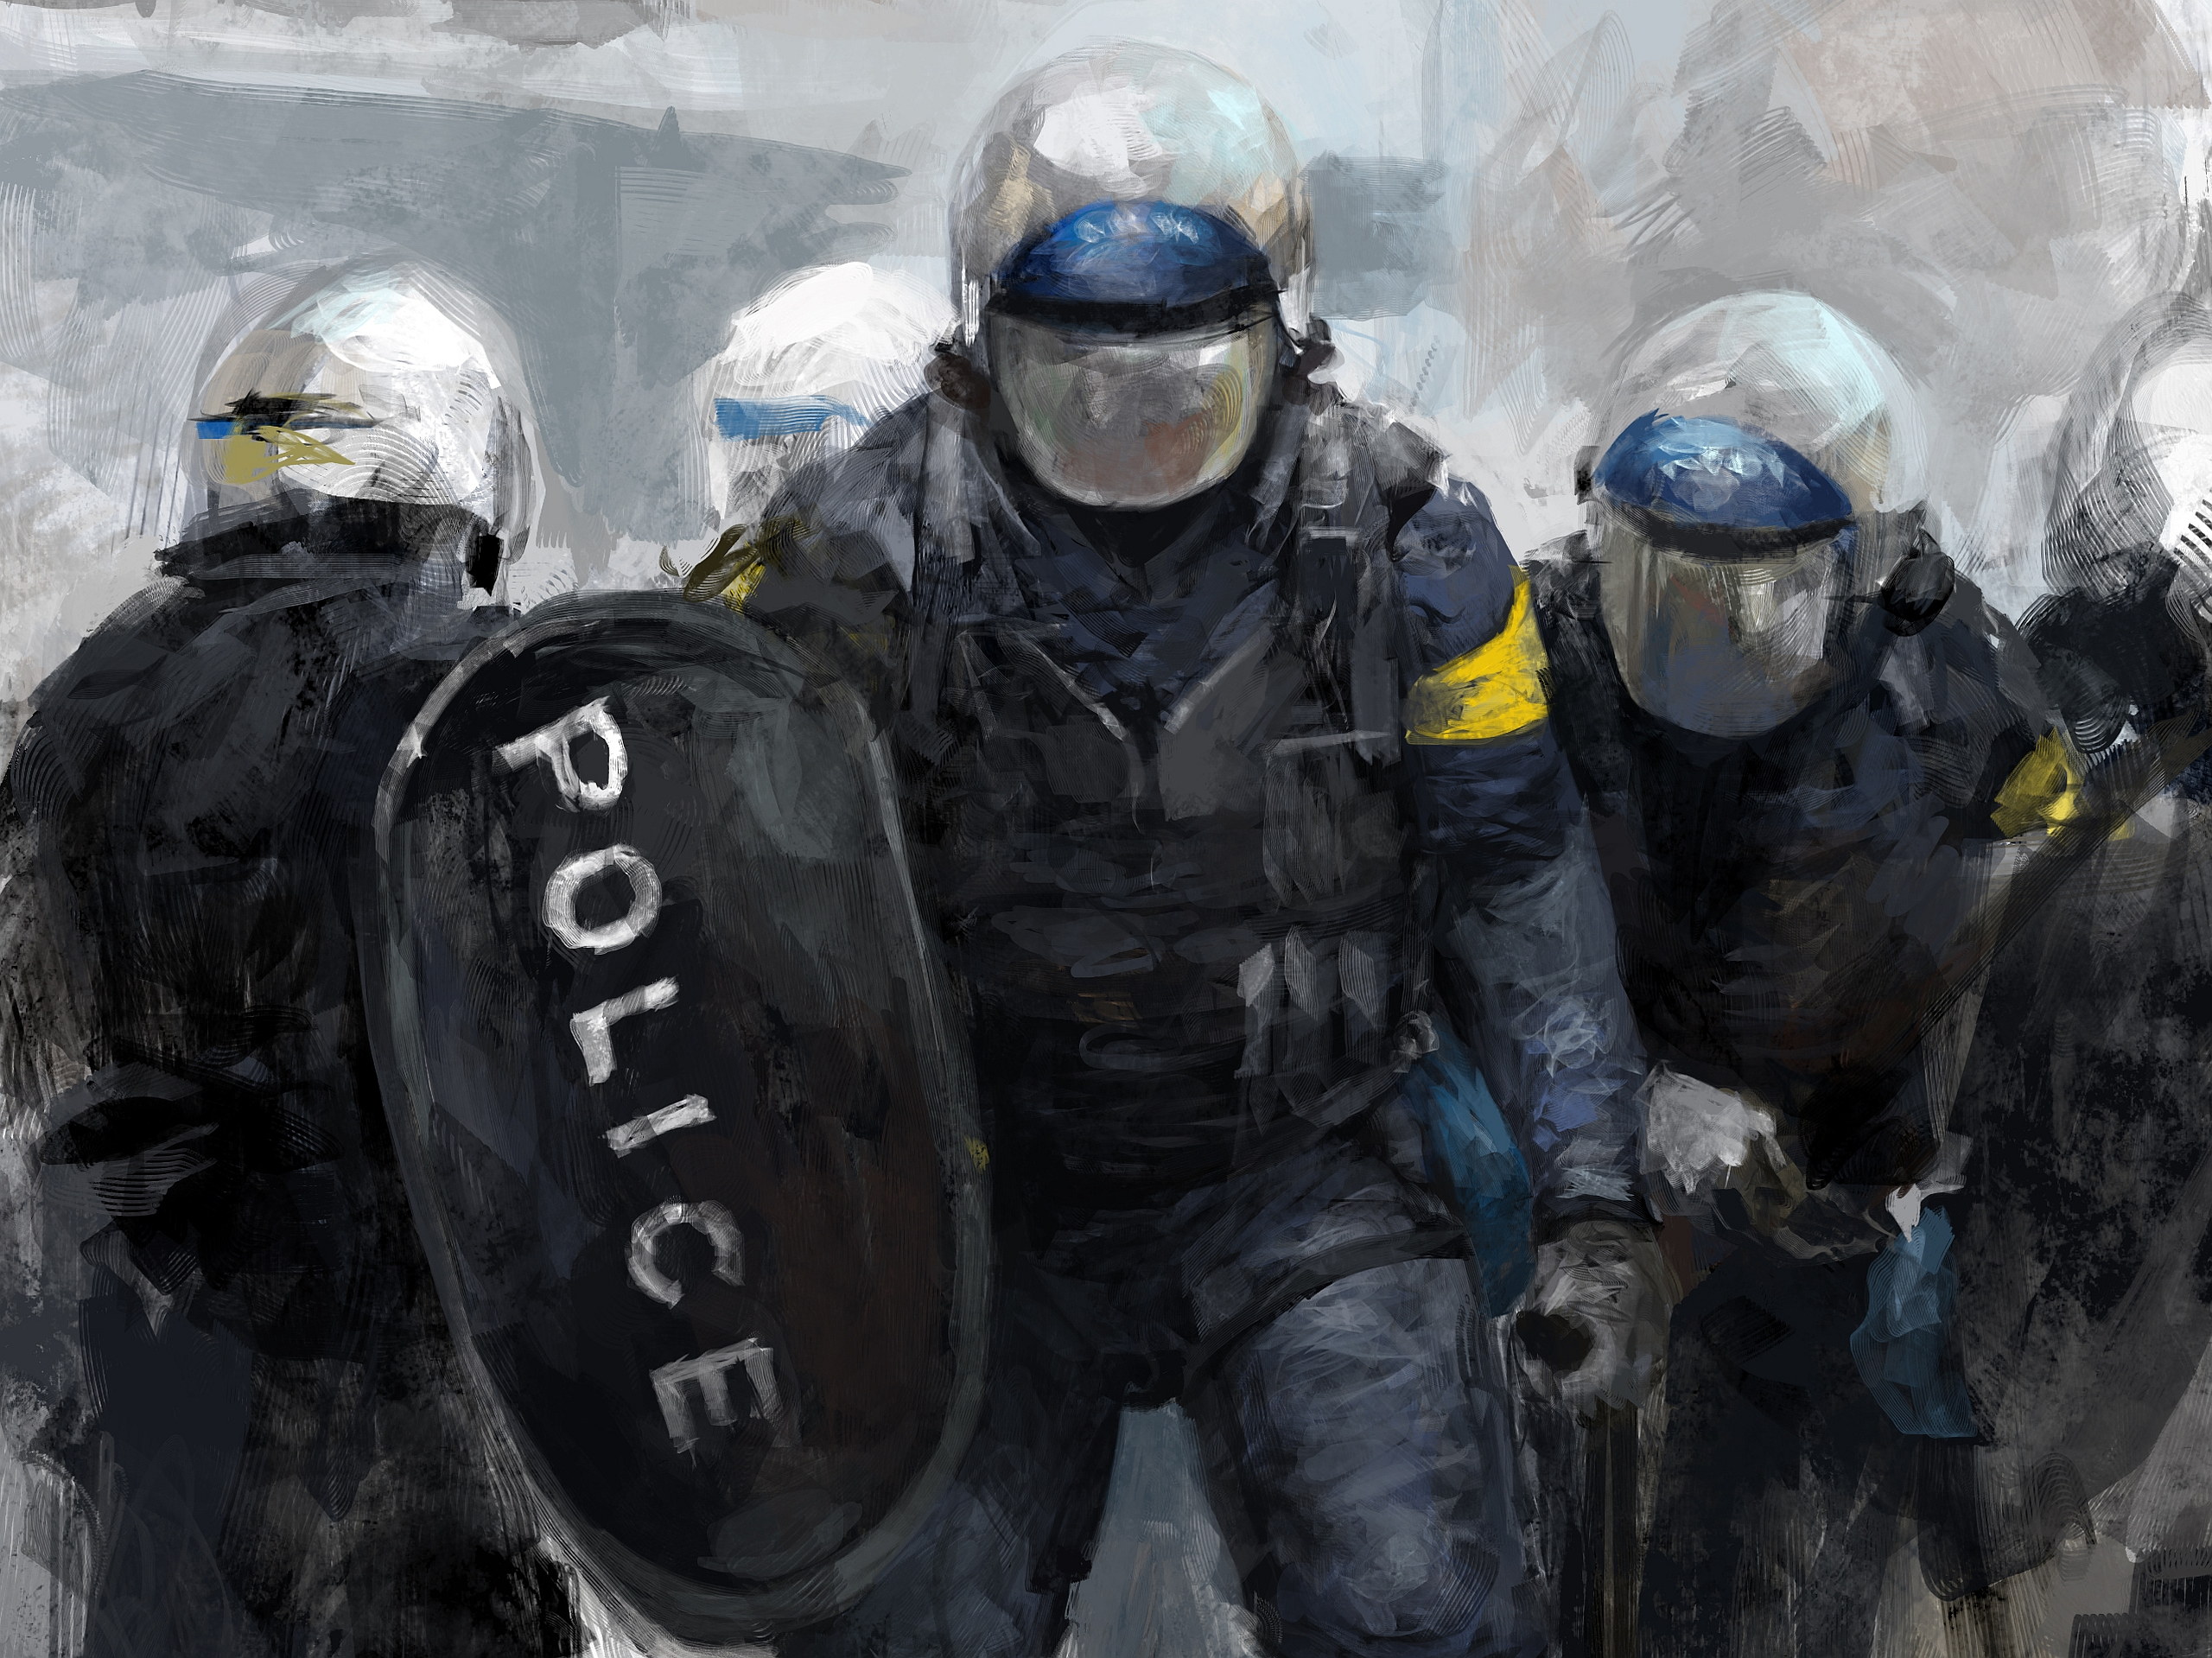 Police Computer Wallpapers, Desktop Backgrounds 2560x1919 Id: 374476